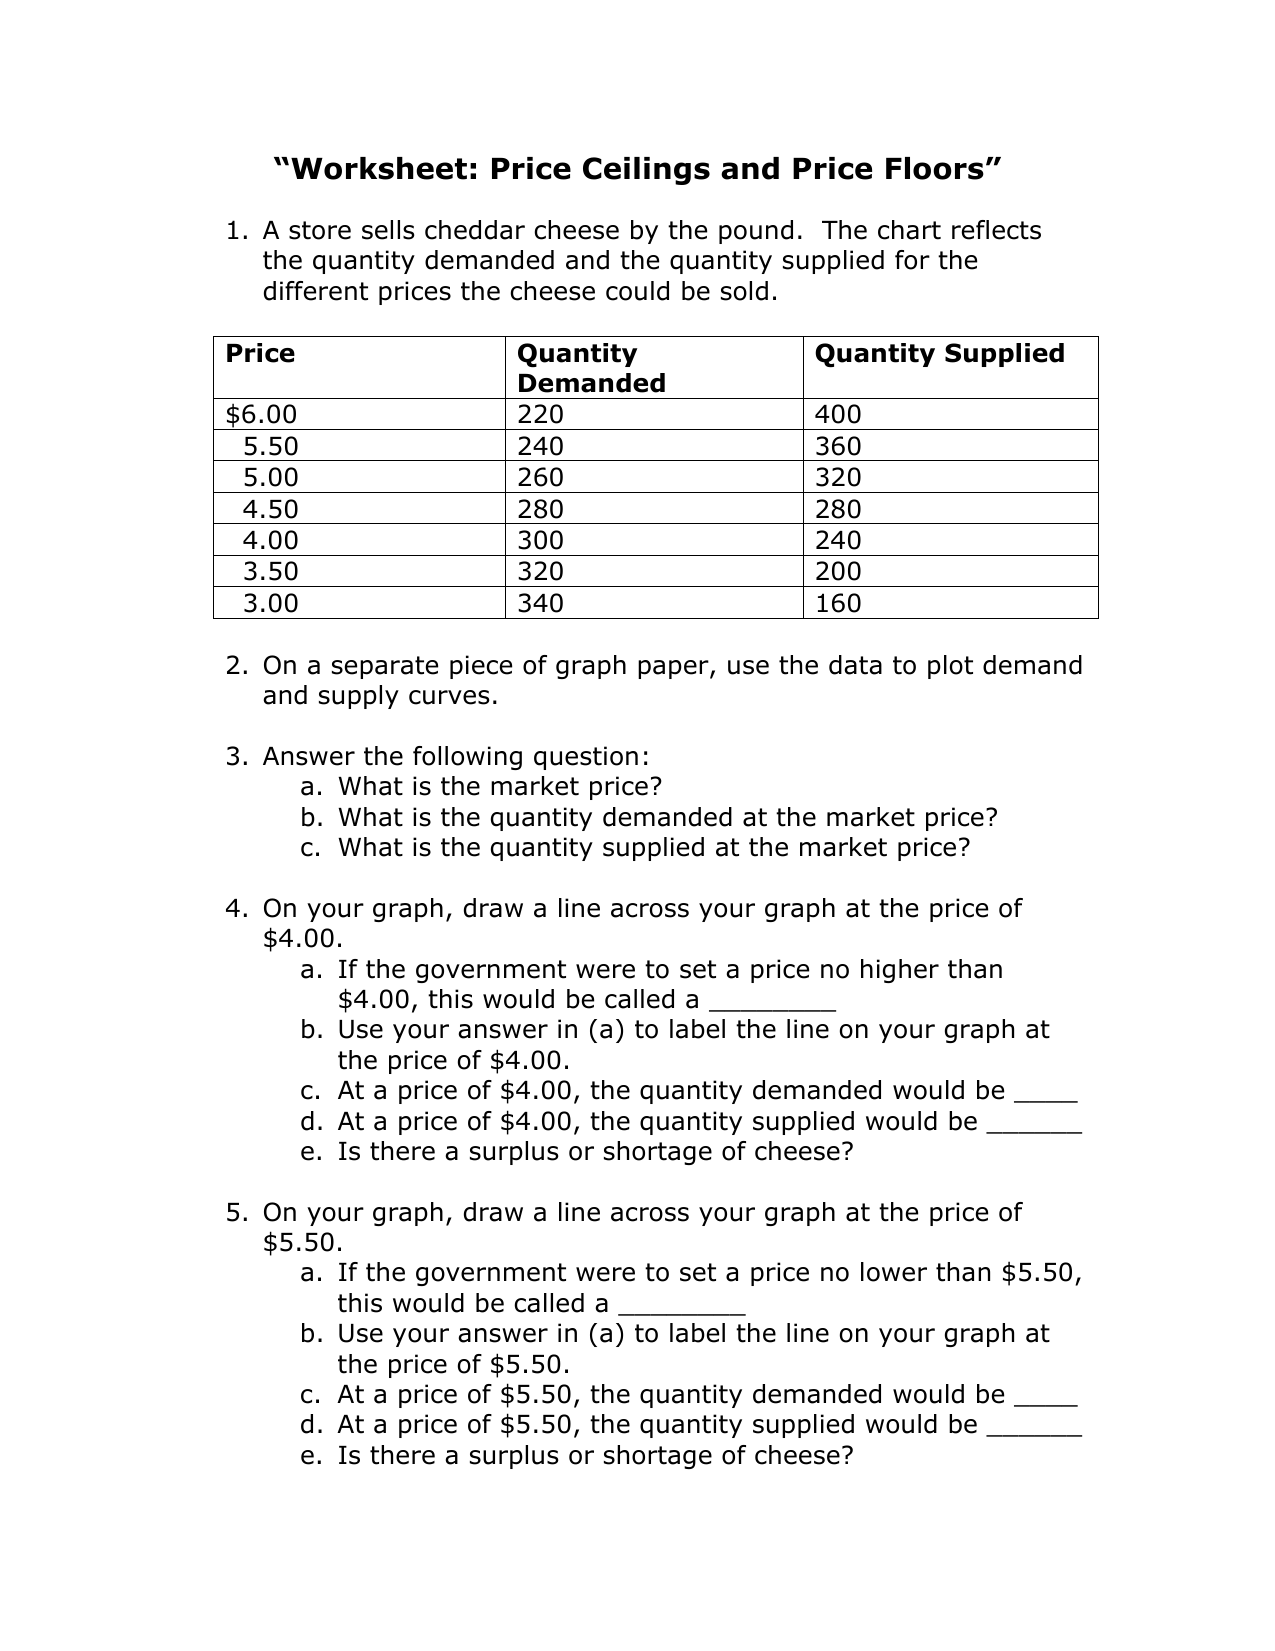 Price Ceilings And Price Floors Worksheet Answers